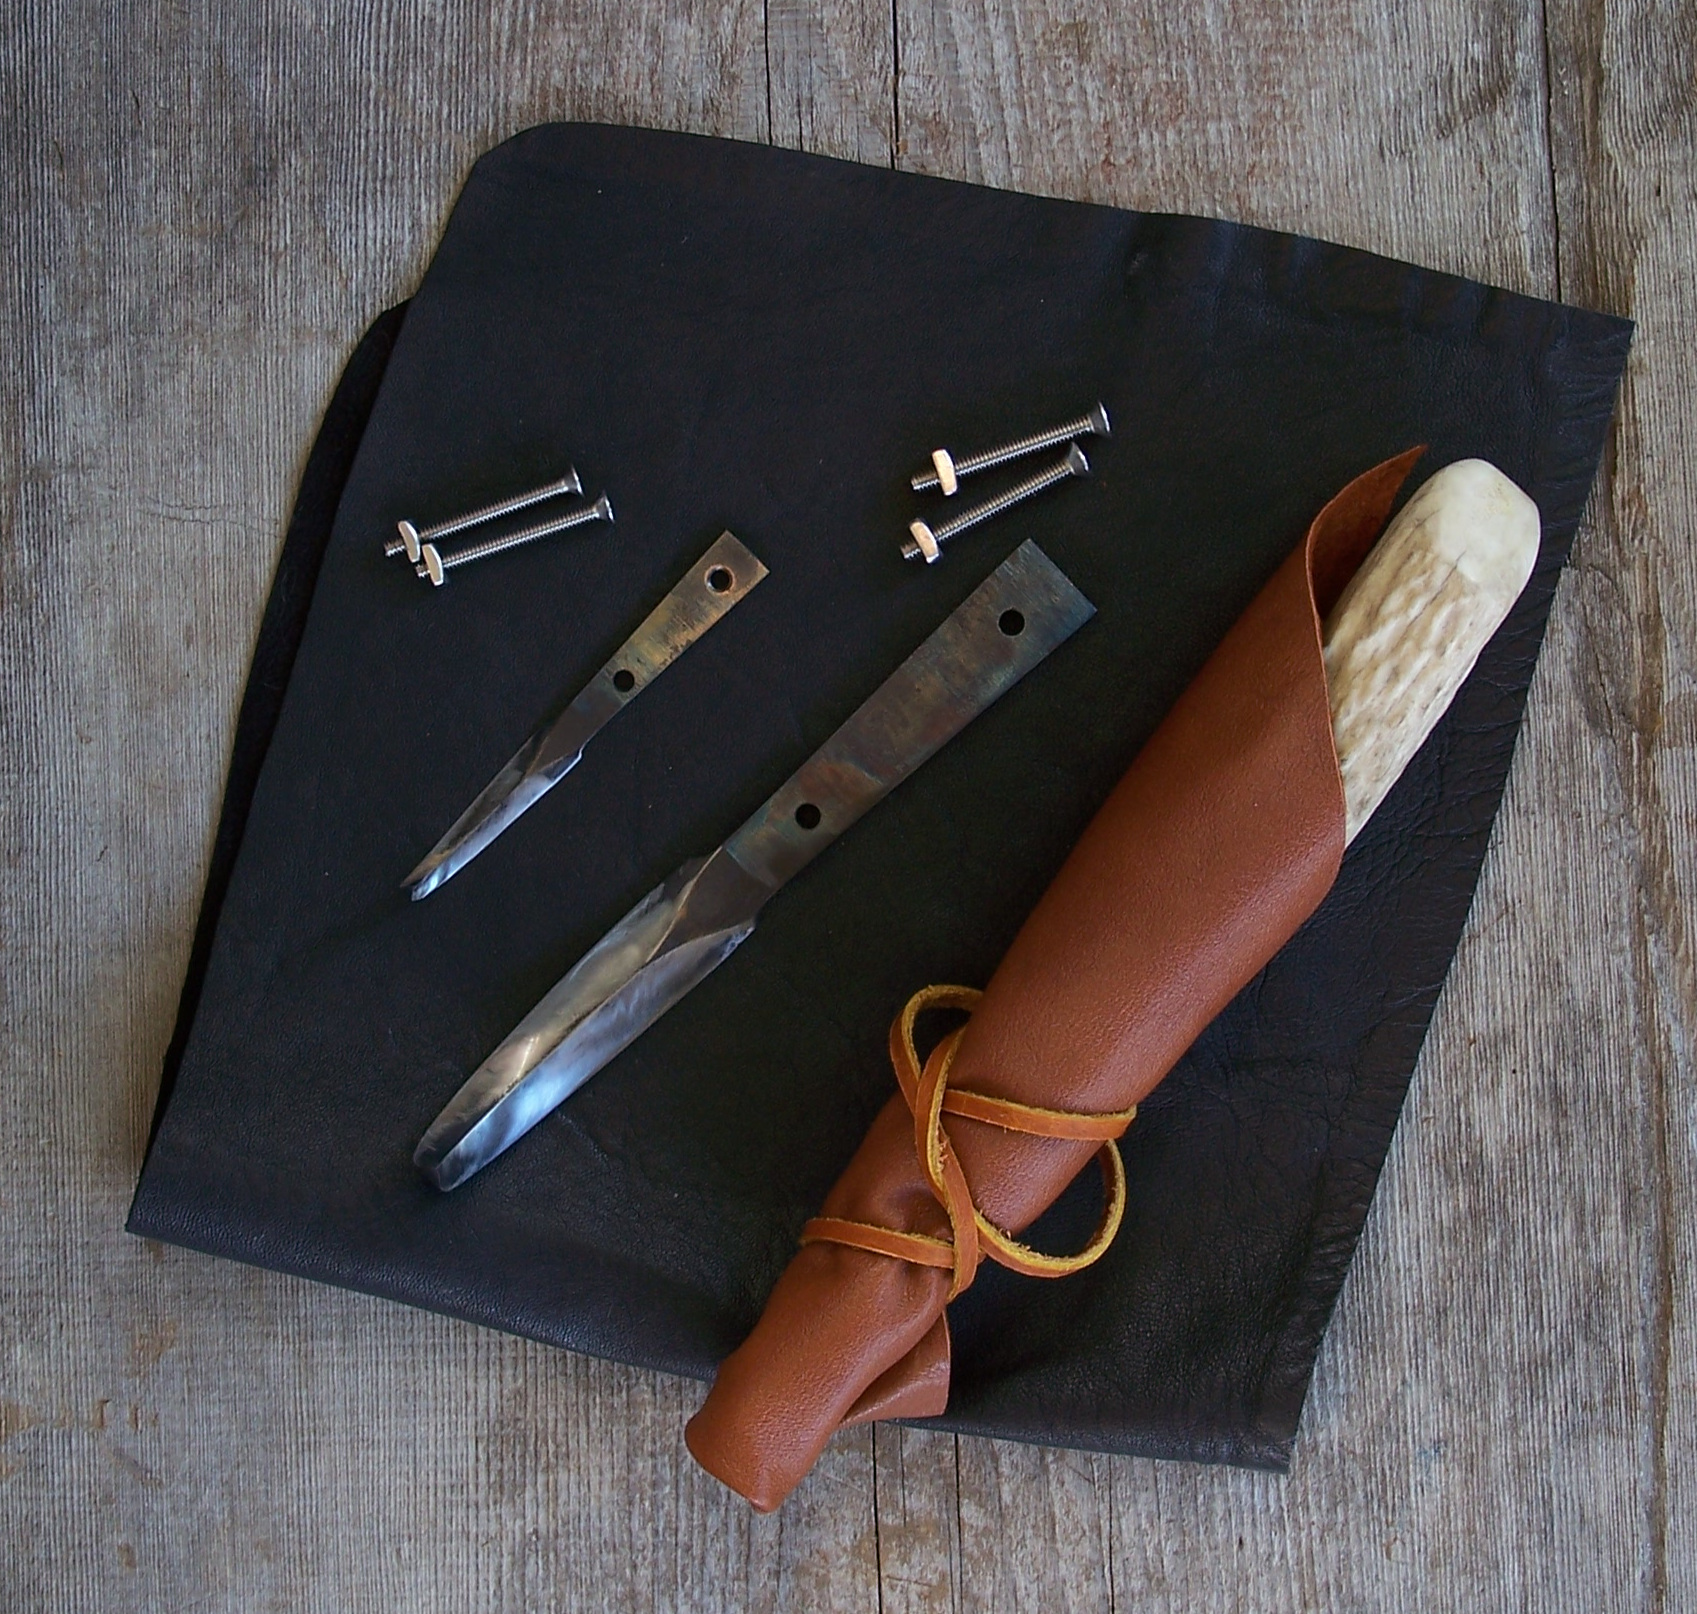 Crooked knife blade sets